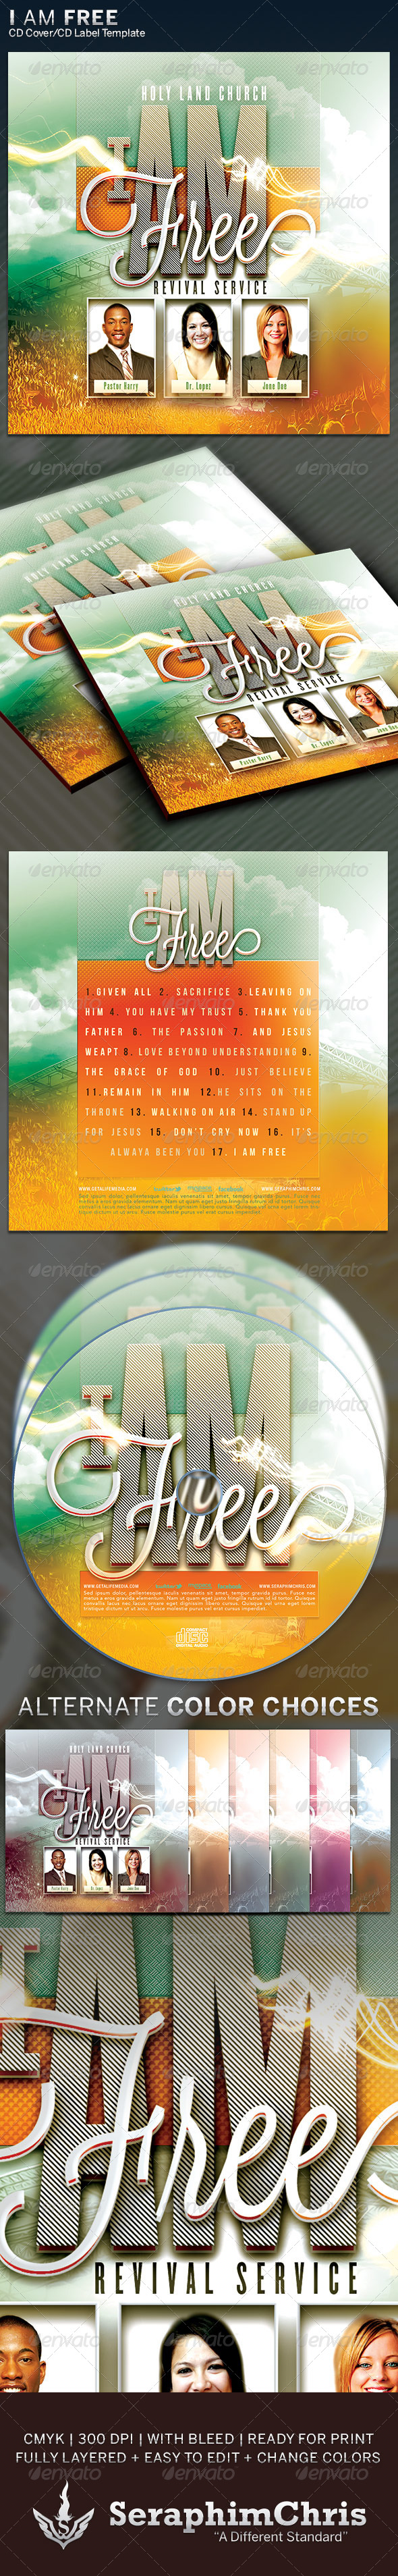 GraphicRiver I Am Free CD Cover Artwork Template 6348059